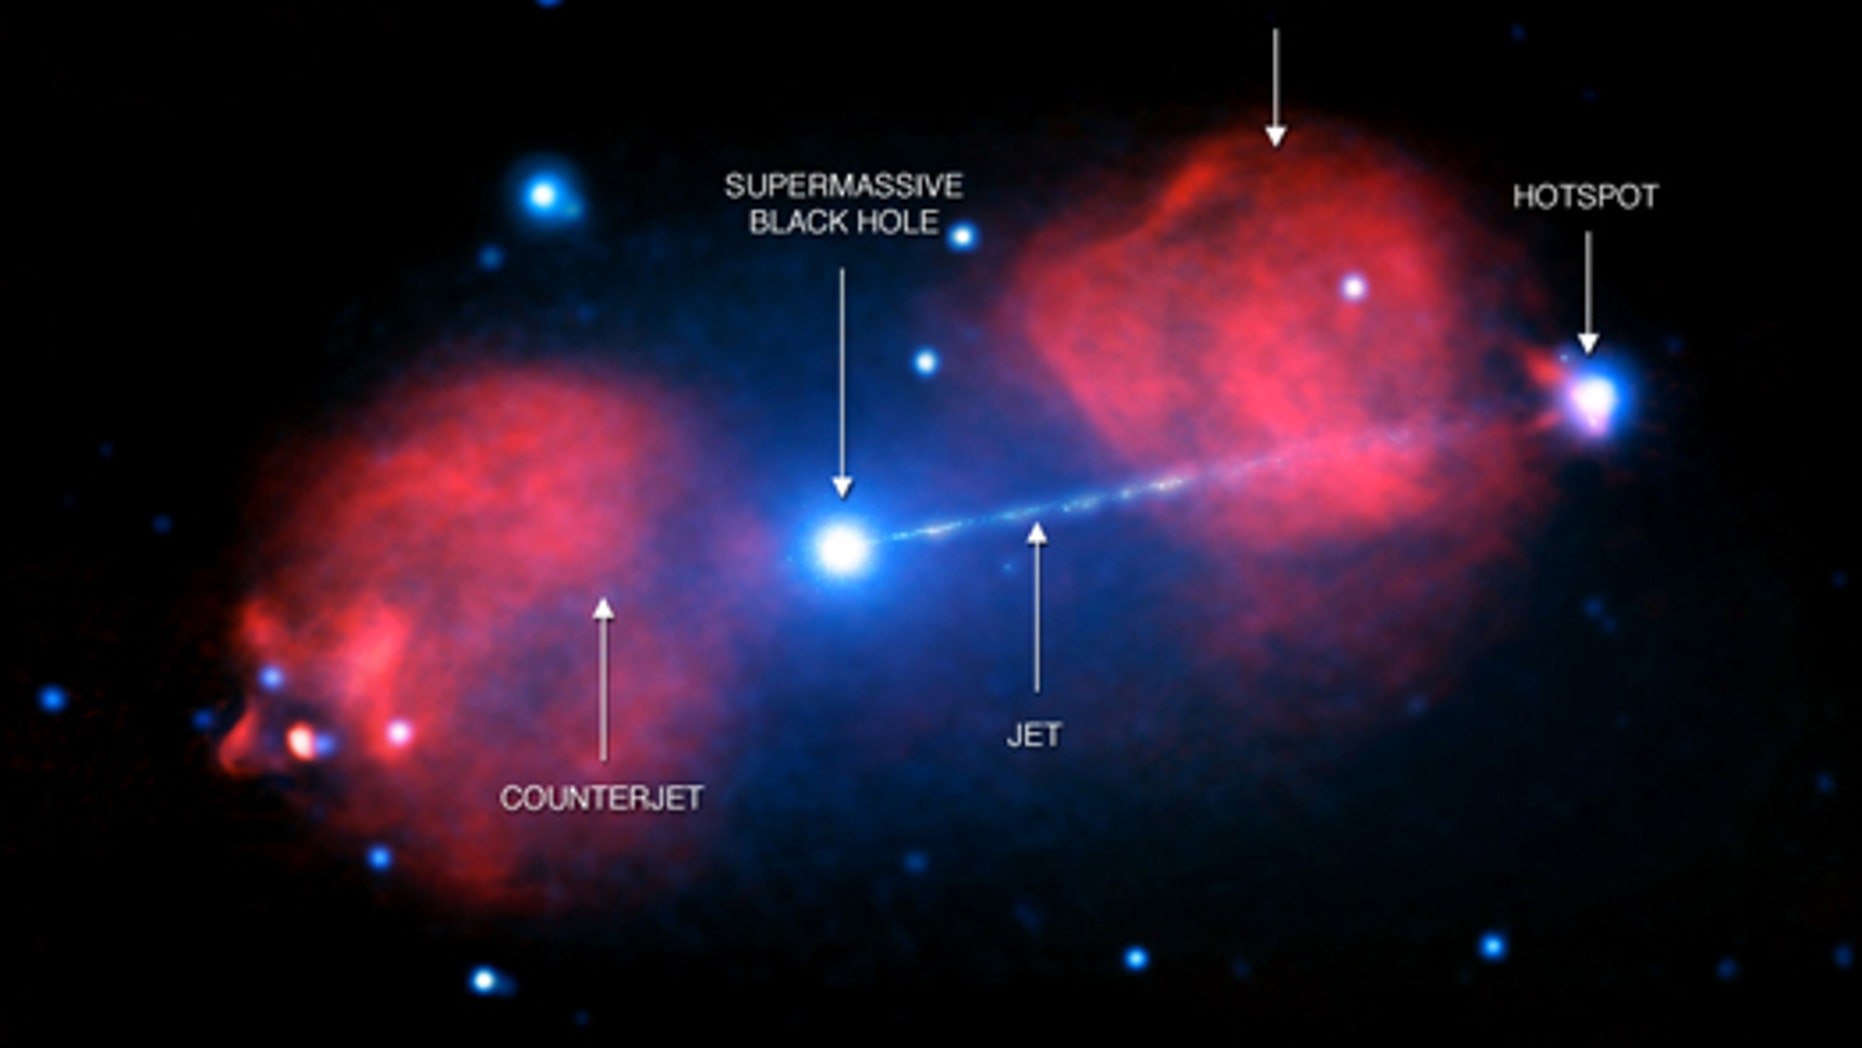 The Pictor A galaxy has a supermassive black hole at its center, and material falling onto the black hole is driving an enormous beam, or jet, of particles at nearly the speed of light into intergalactic space. This composite image contains X-ray data obtained by Chandra at various times over 15 years (blue) and radio data from the Australia Telescope Compact Array (red). ( X-ray: NASA/CXC/Univ of Hertfordshire/M.Hardcastle et al., Radio: CSIRO/ATNF/ATCA)